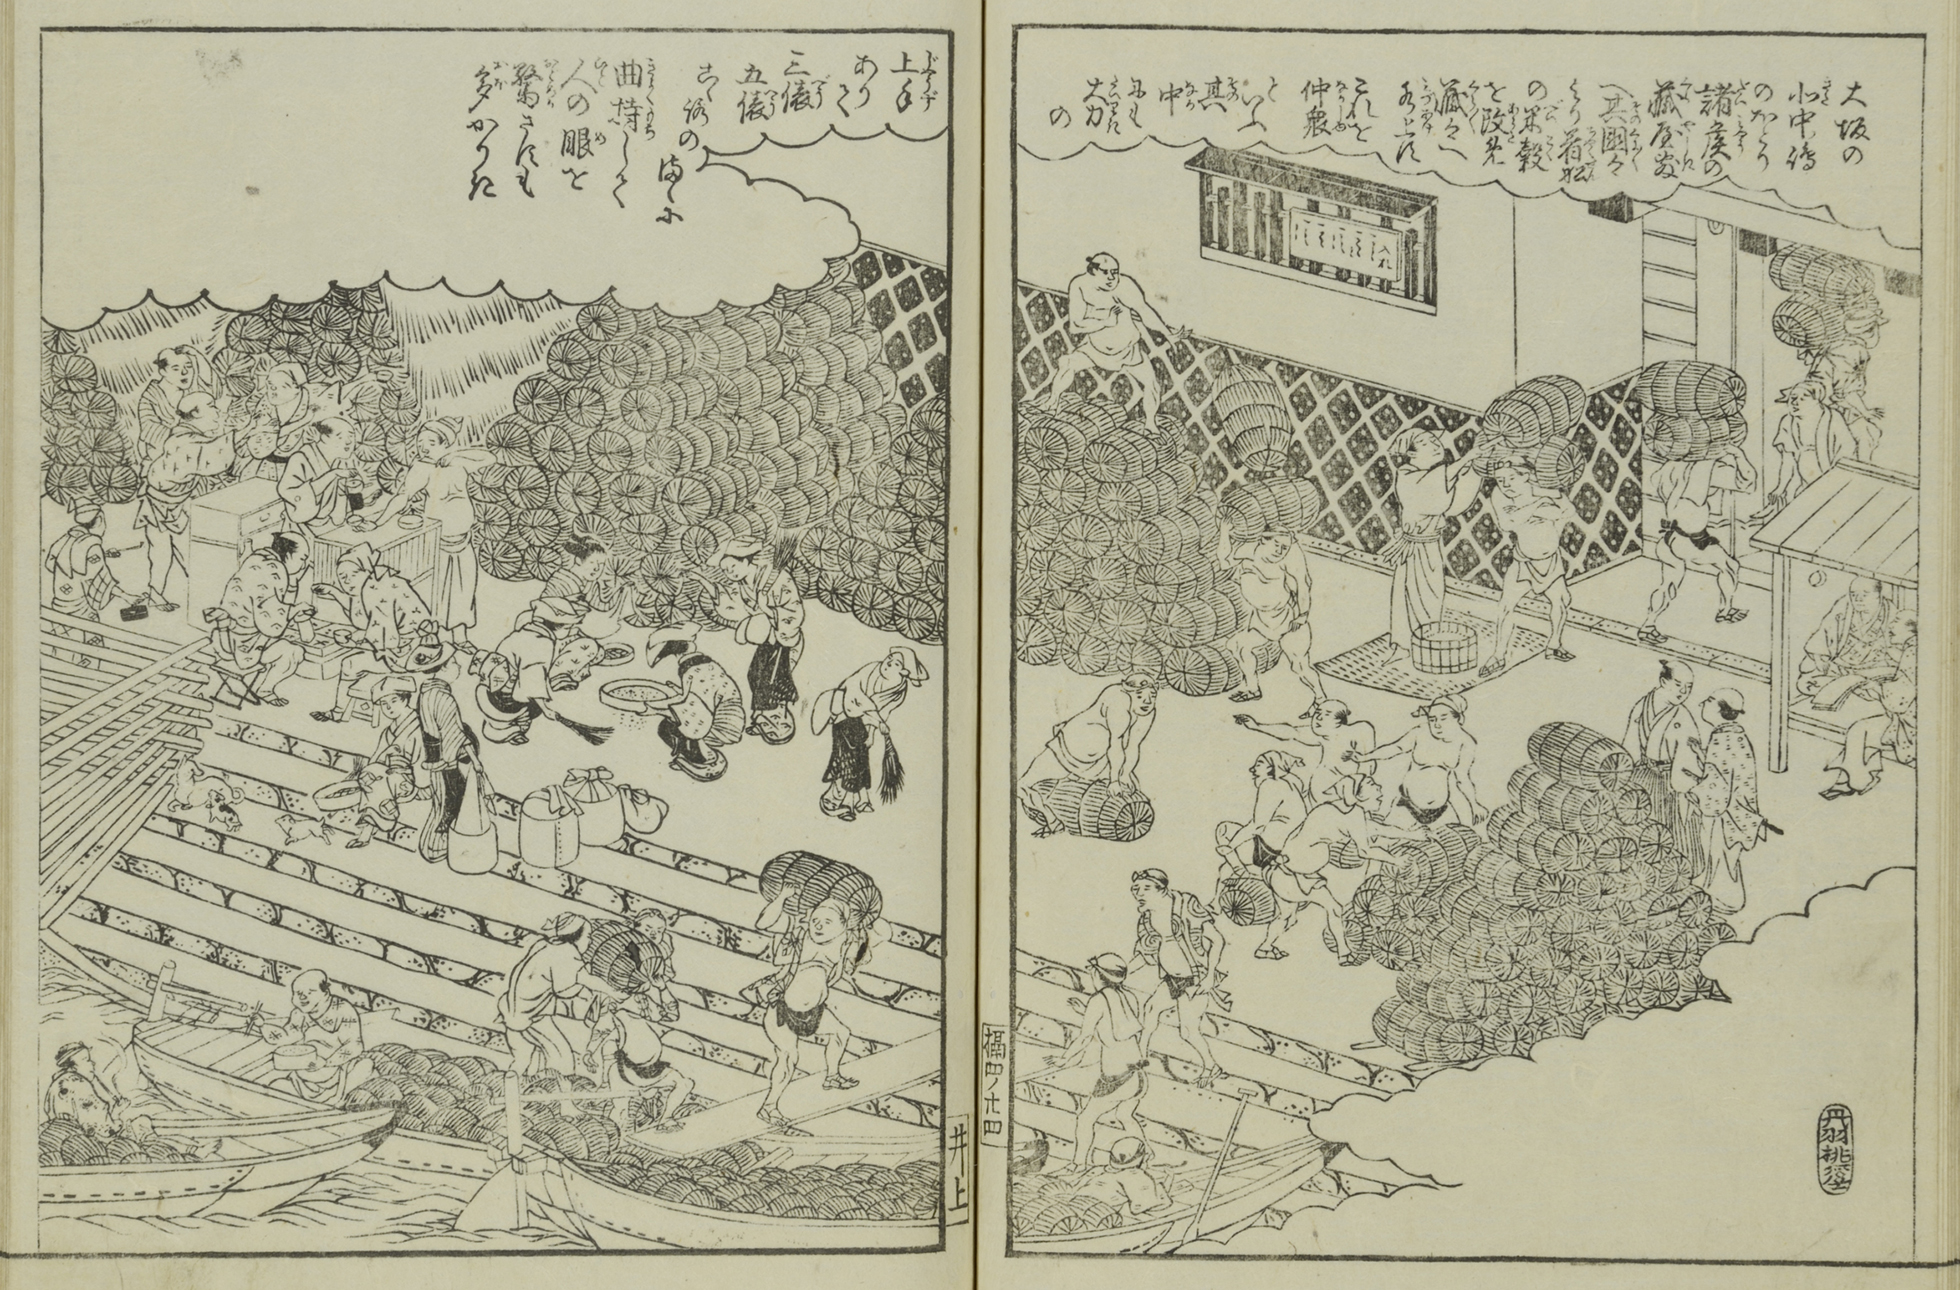 A black and white woodblock print showing bundles of goods being unloaded from boats and stored in towering piles.